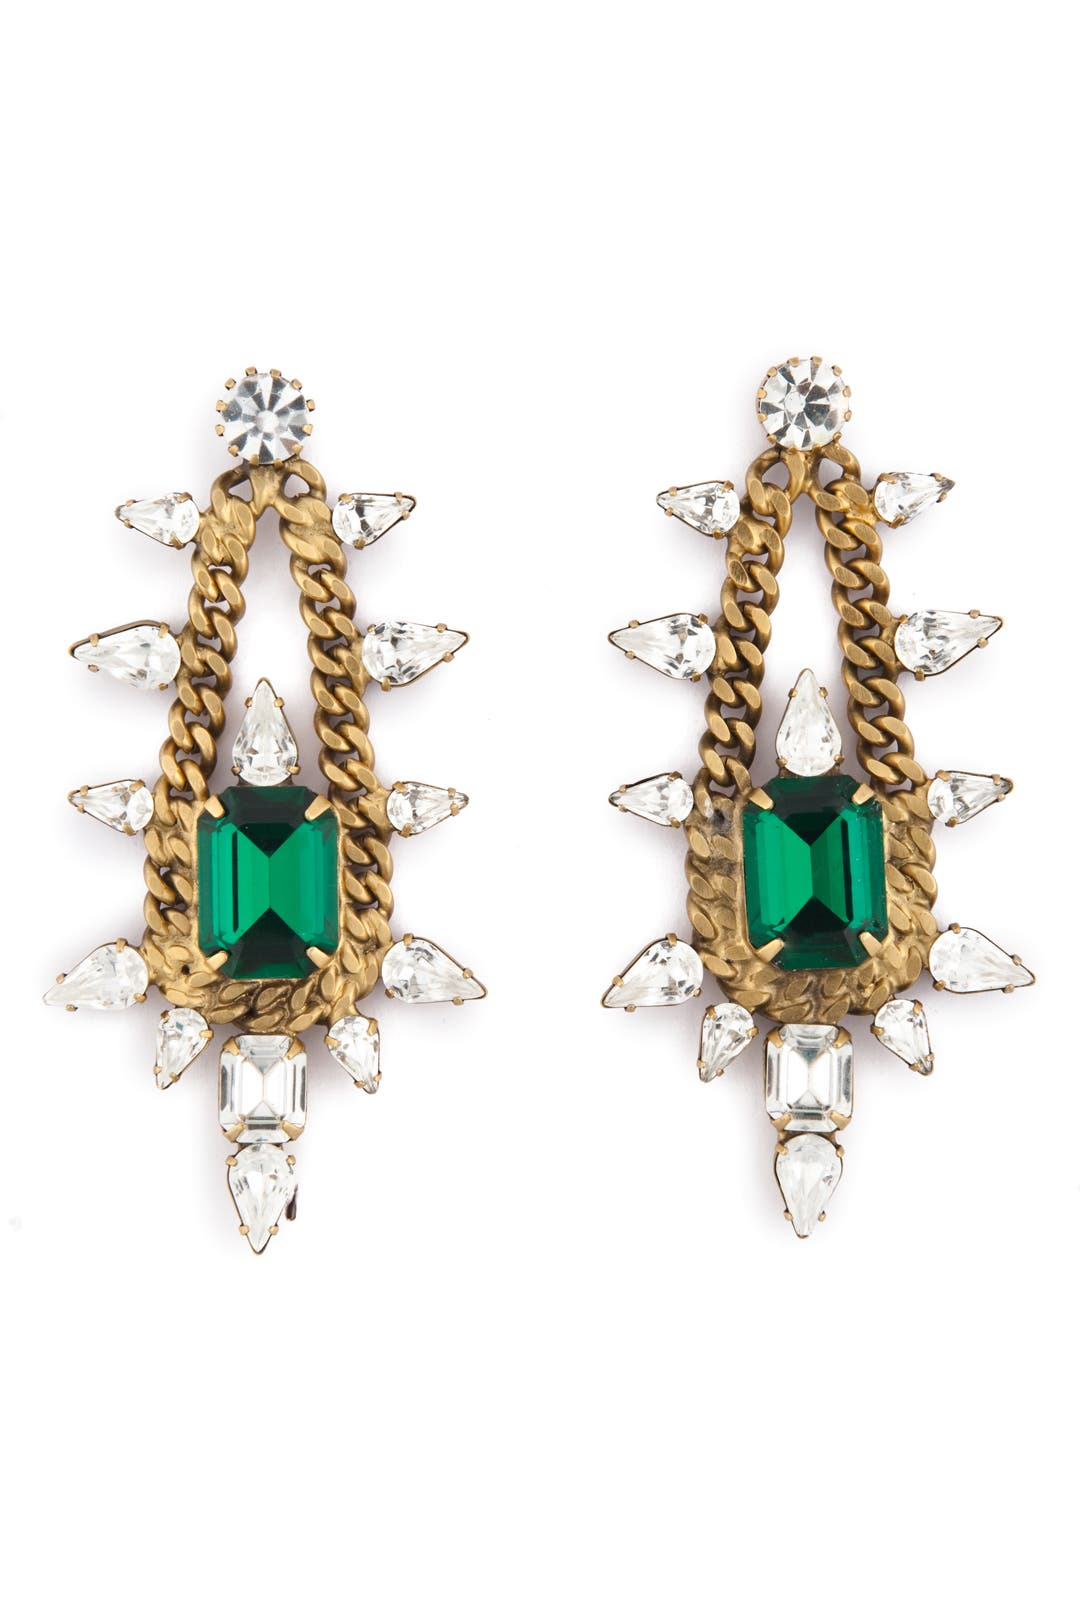 Old School Glamour Earrings by Elizabeth Cole